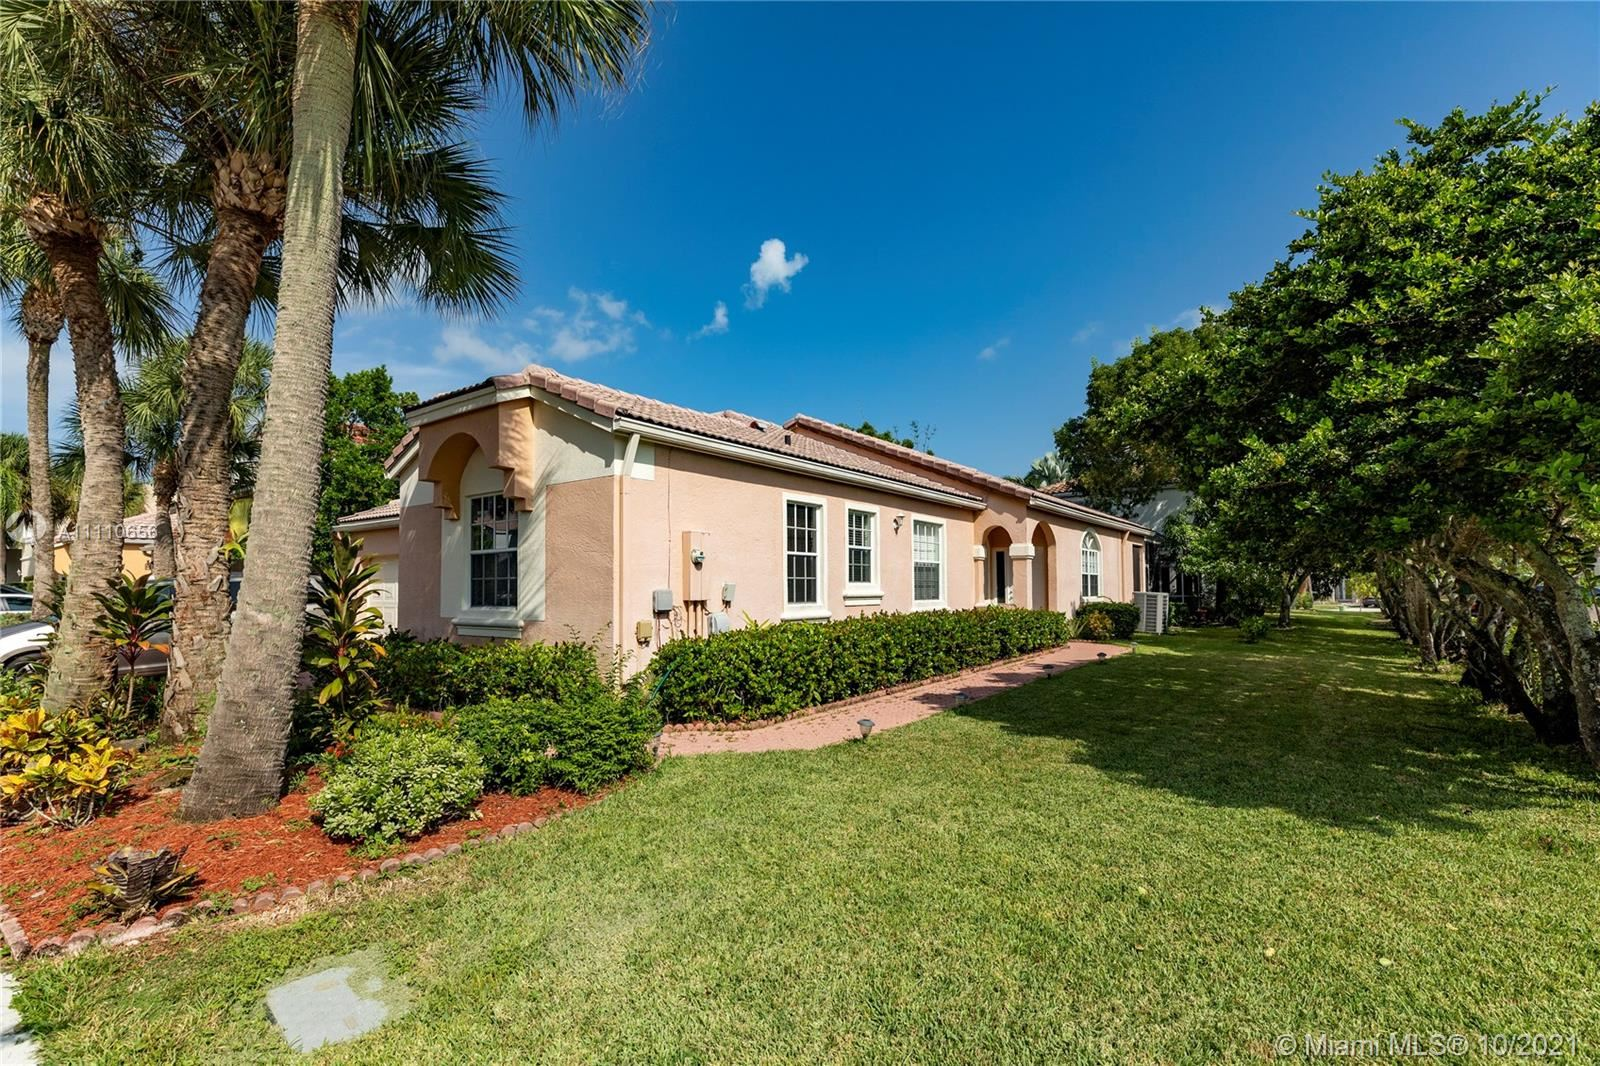 Photo of 601 NW 156th Ave, Pembroke Pines, FL 33028 (MLS # A11110656)